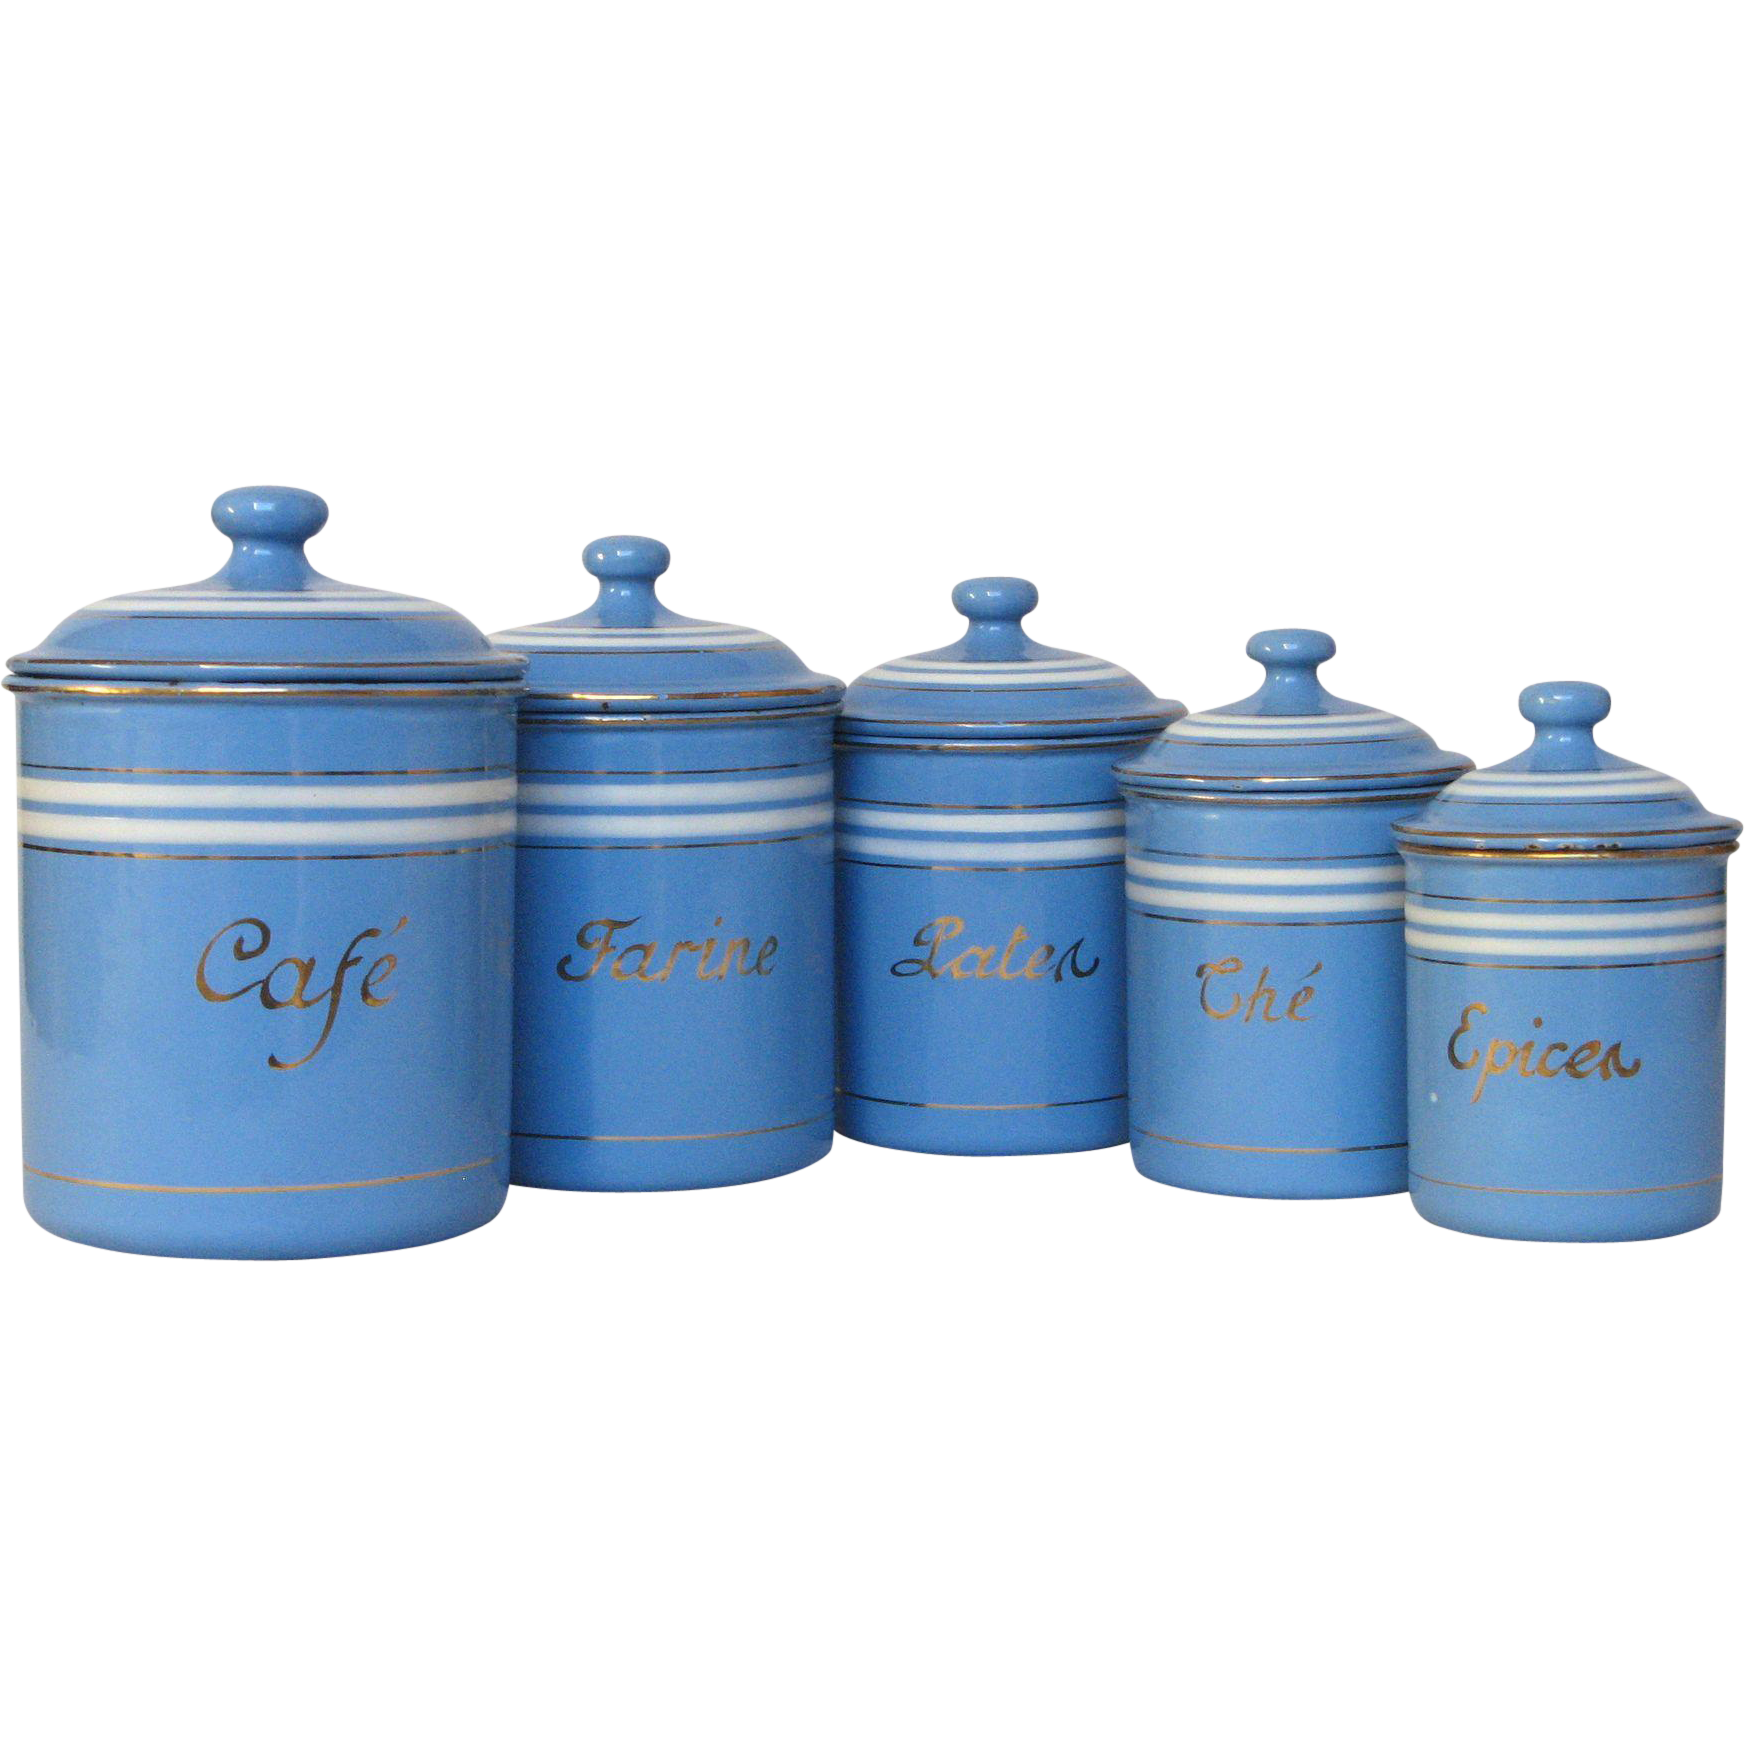 Set of Sky Blue French Enamel Graniteware Kitchen Canisters ...